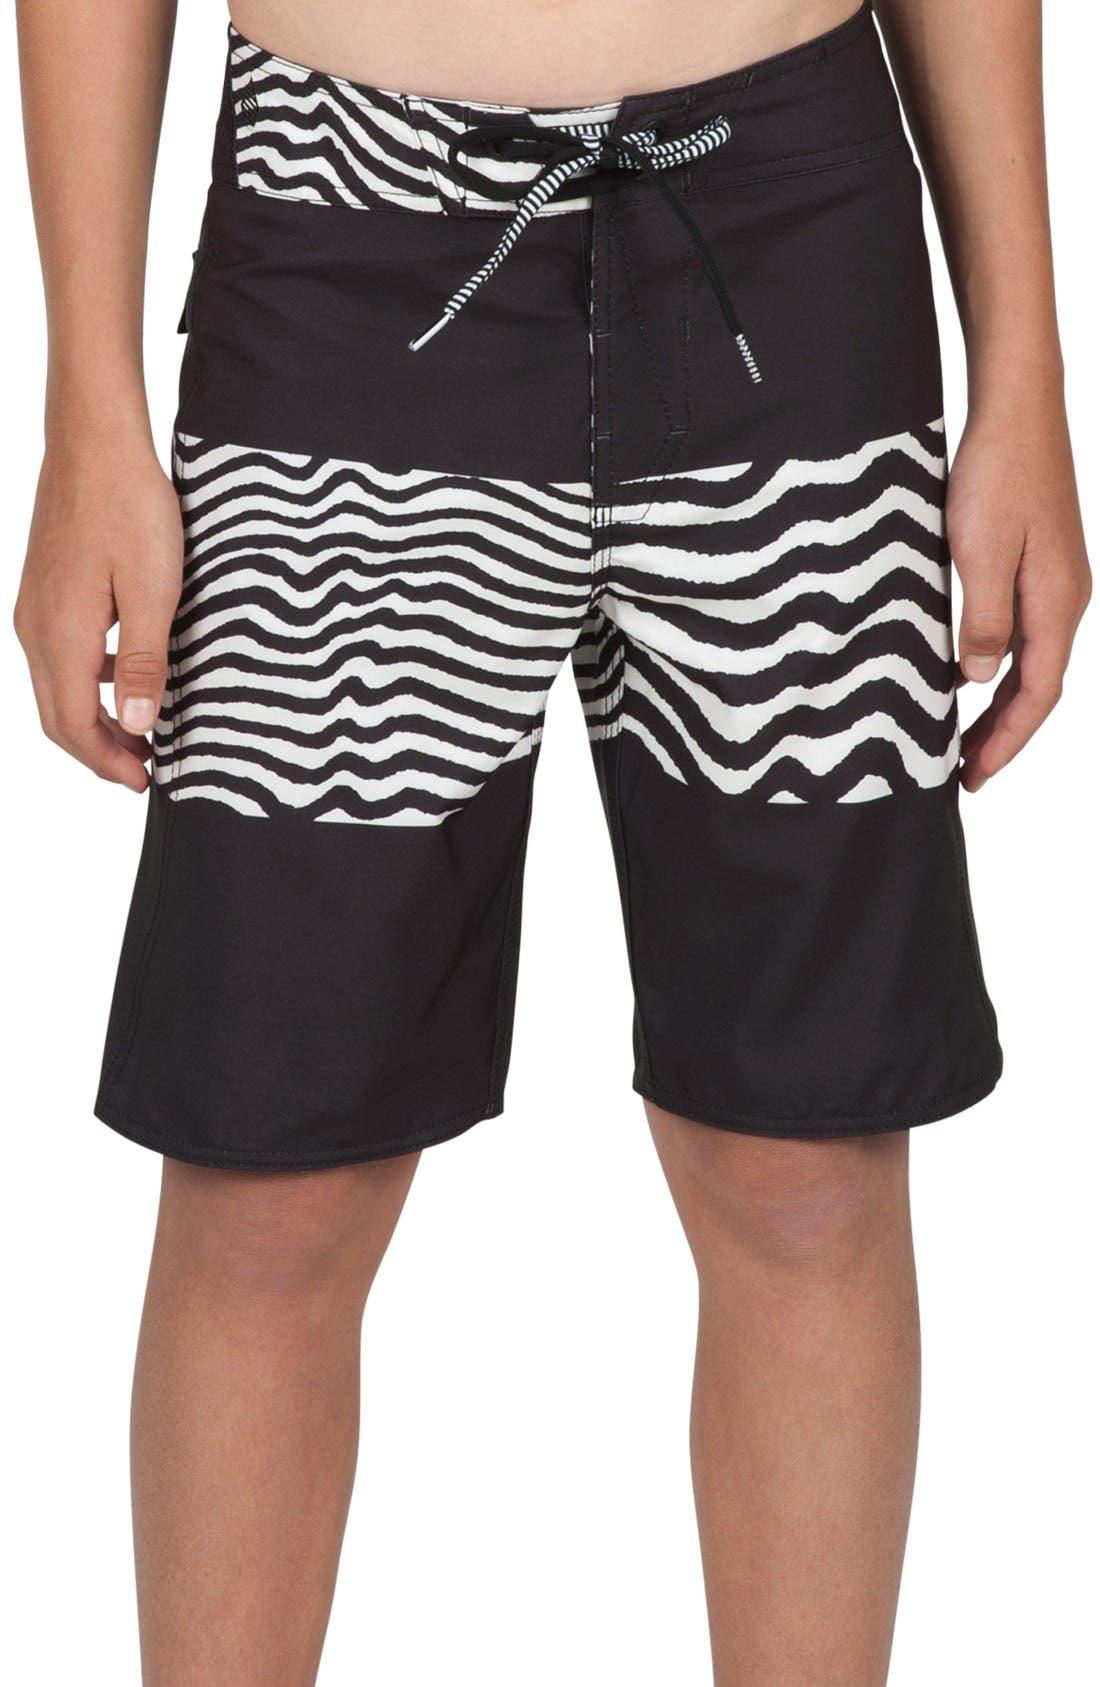 Macaw Mod Board Shorts,                             Main thumbnail 1, color,                             Black/ White